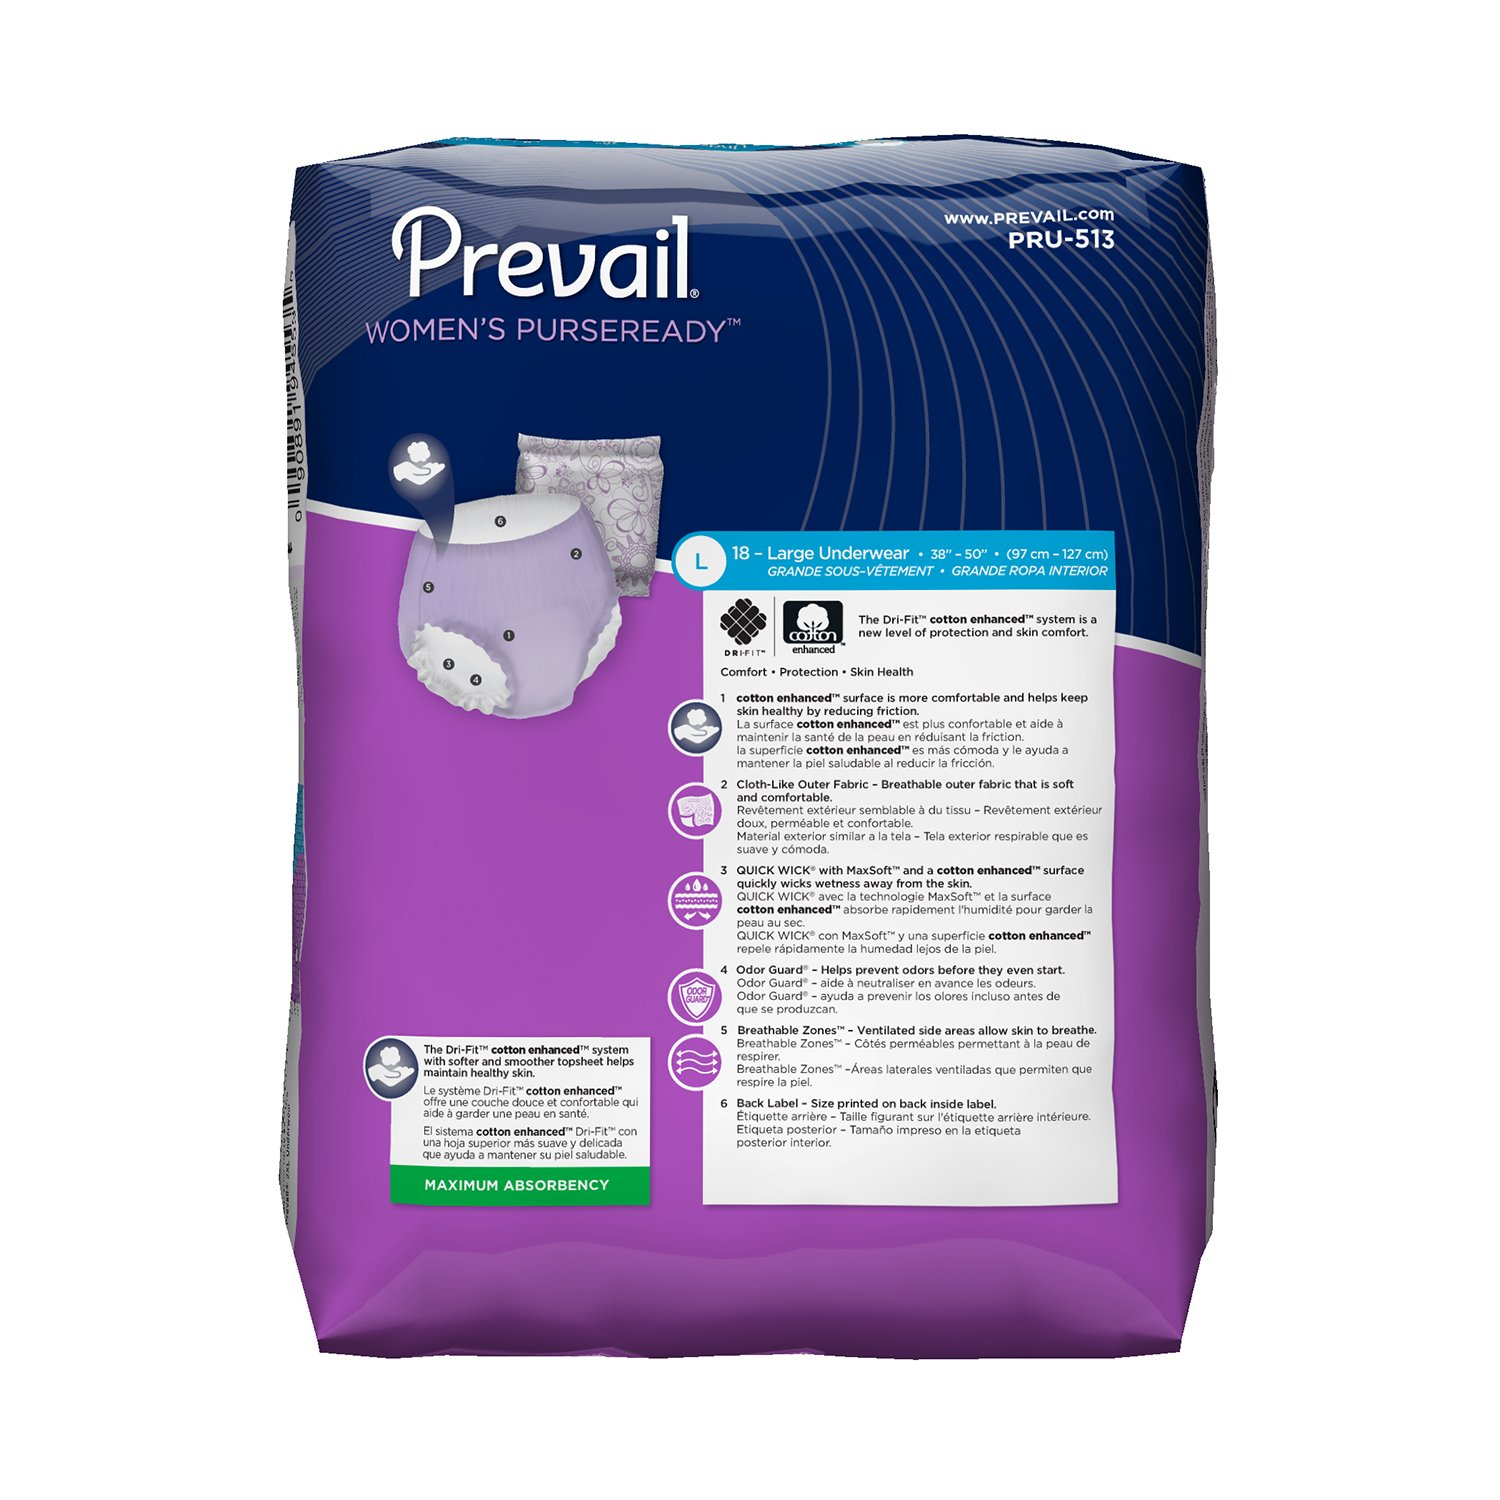 Amazon.com: Prevail PurseReady Maximum Absorbency Incontinence Underwear for Women, Large, 18-Count (Pack of 4): Health & Personal Care